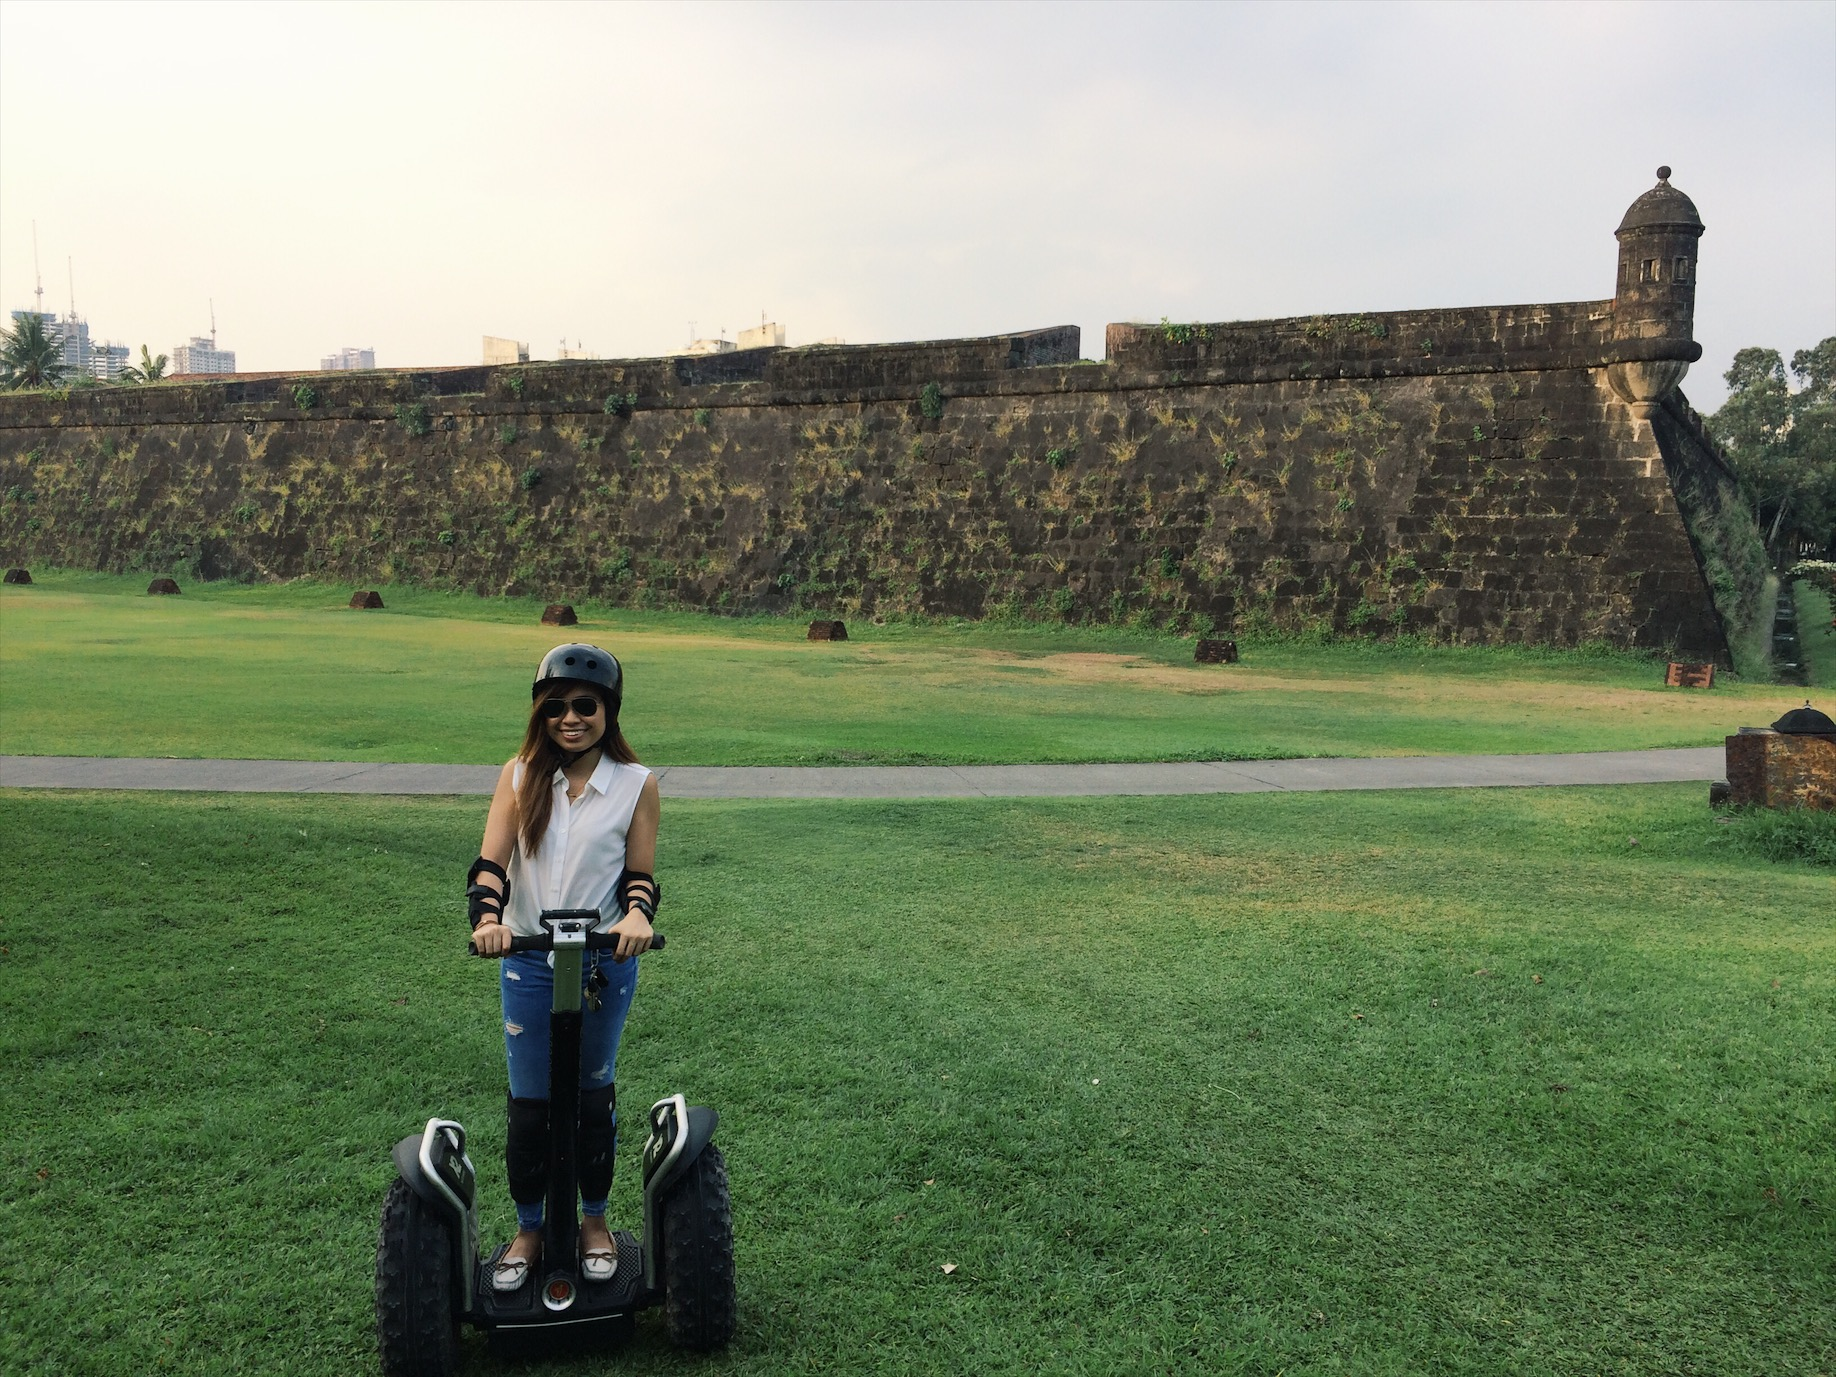 Hidden Treasures of Club Intramuros Segway tour